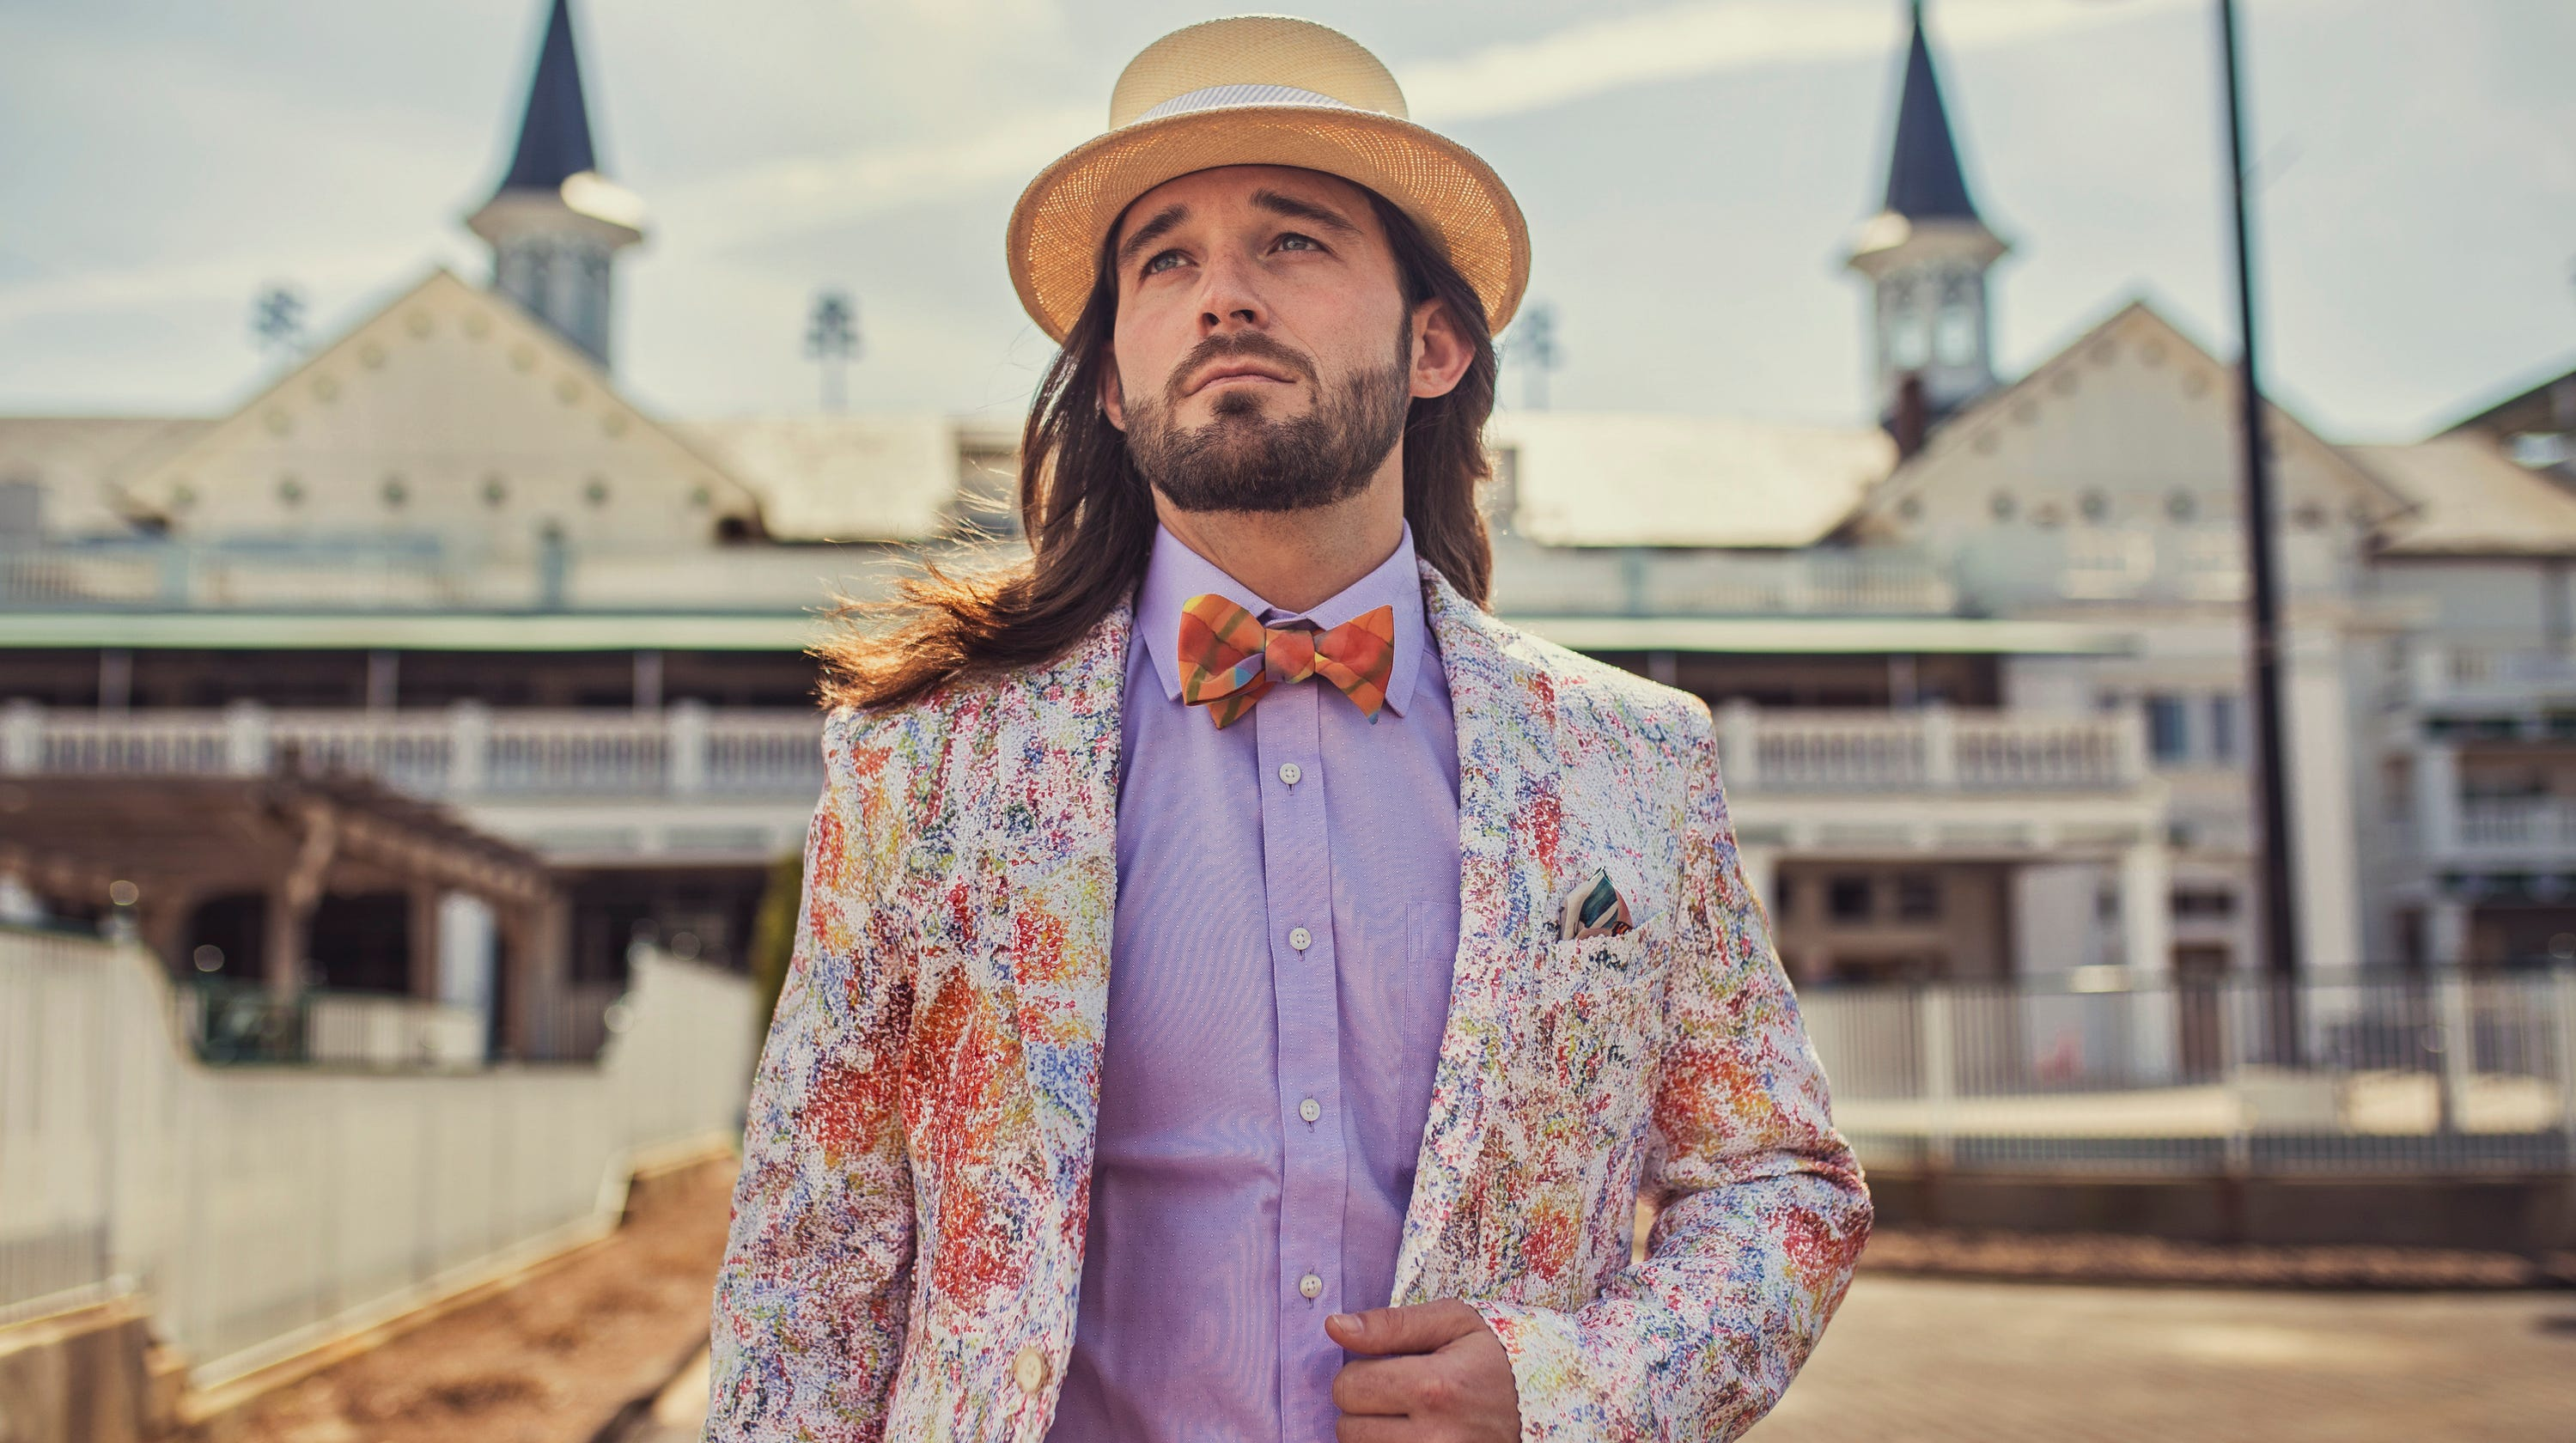 3bc2c31a598c Kentucky Derby outfits for guys 2019: Men's attire, hats, bow ties